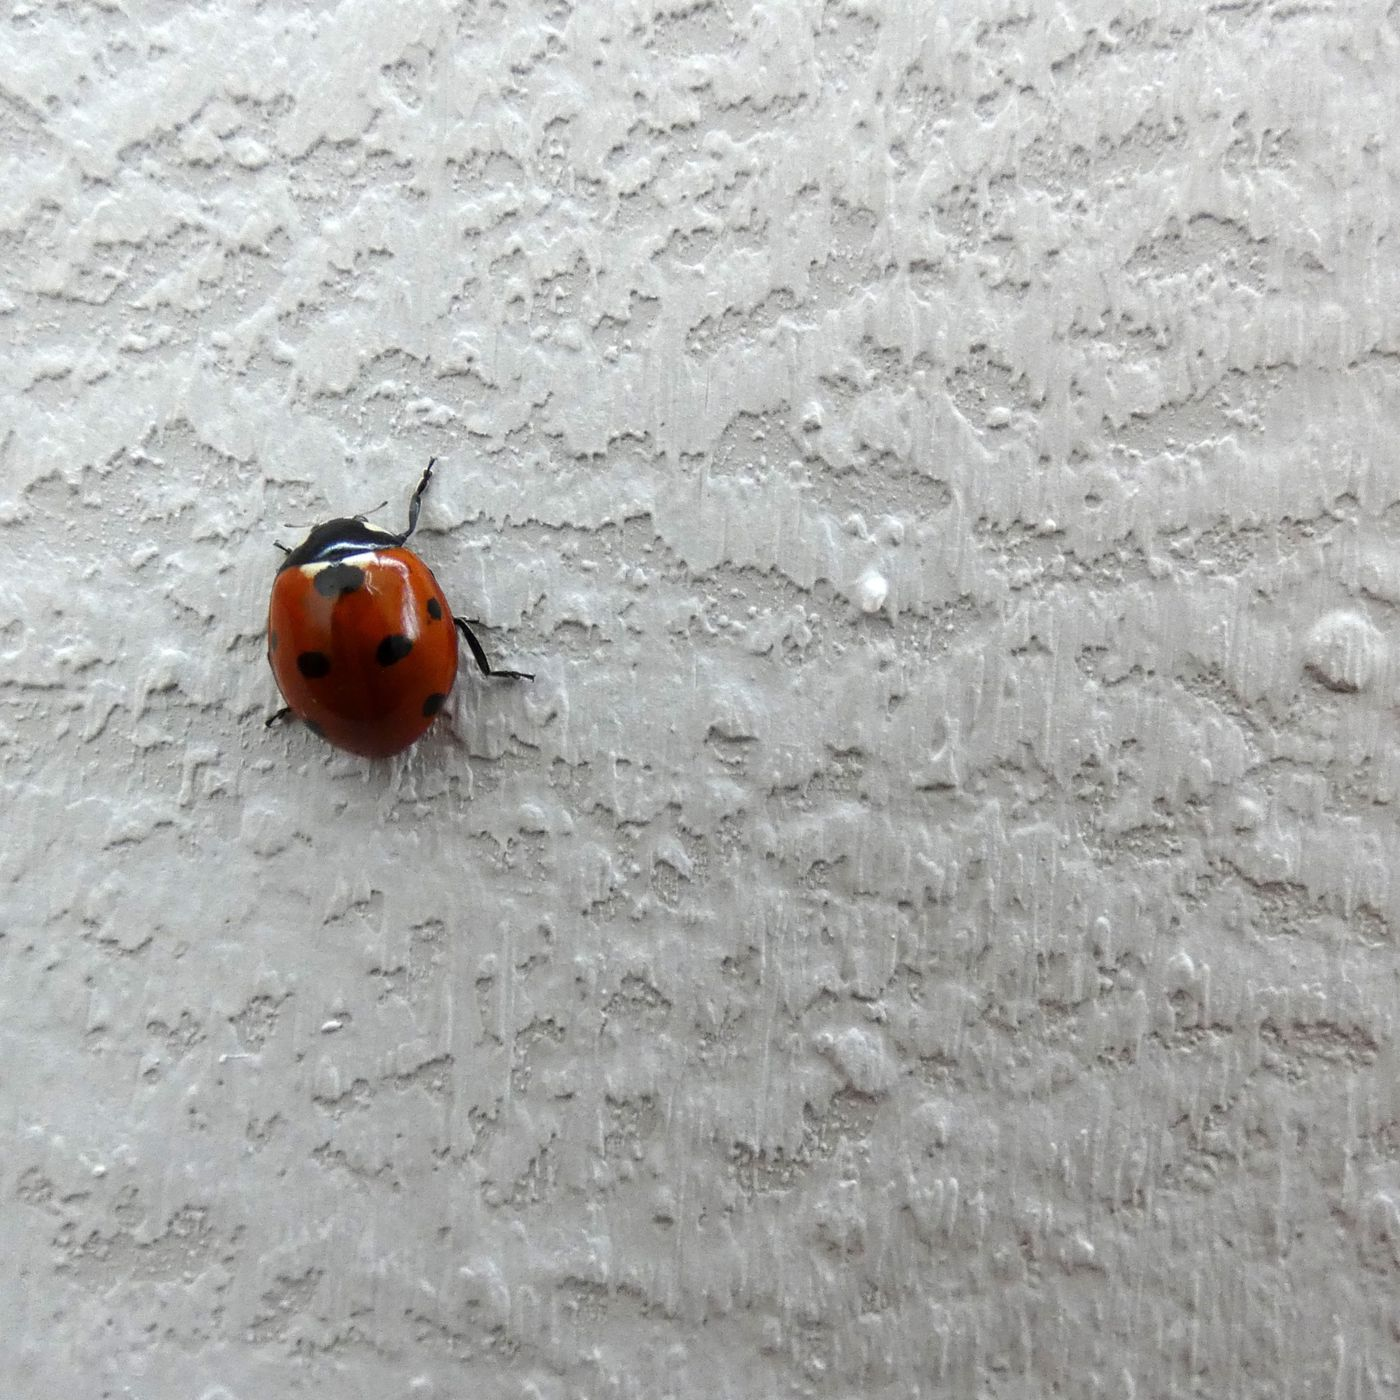 How To Get Rid Of Ladybugs This Old House